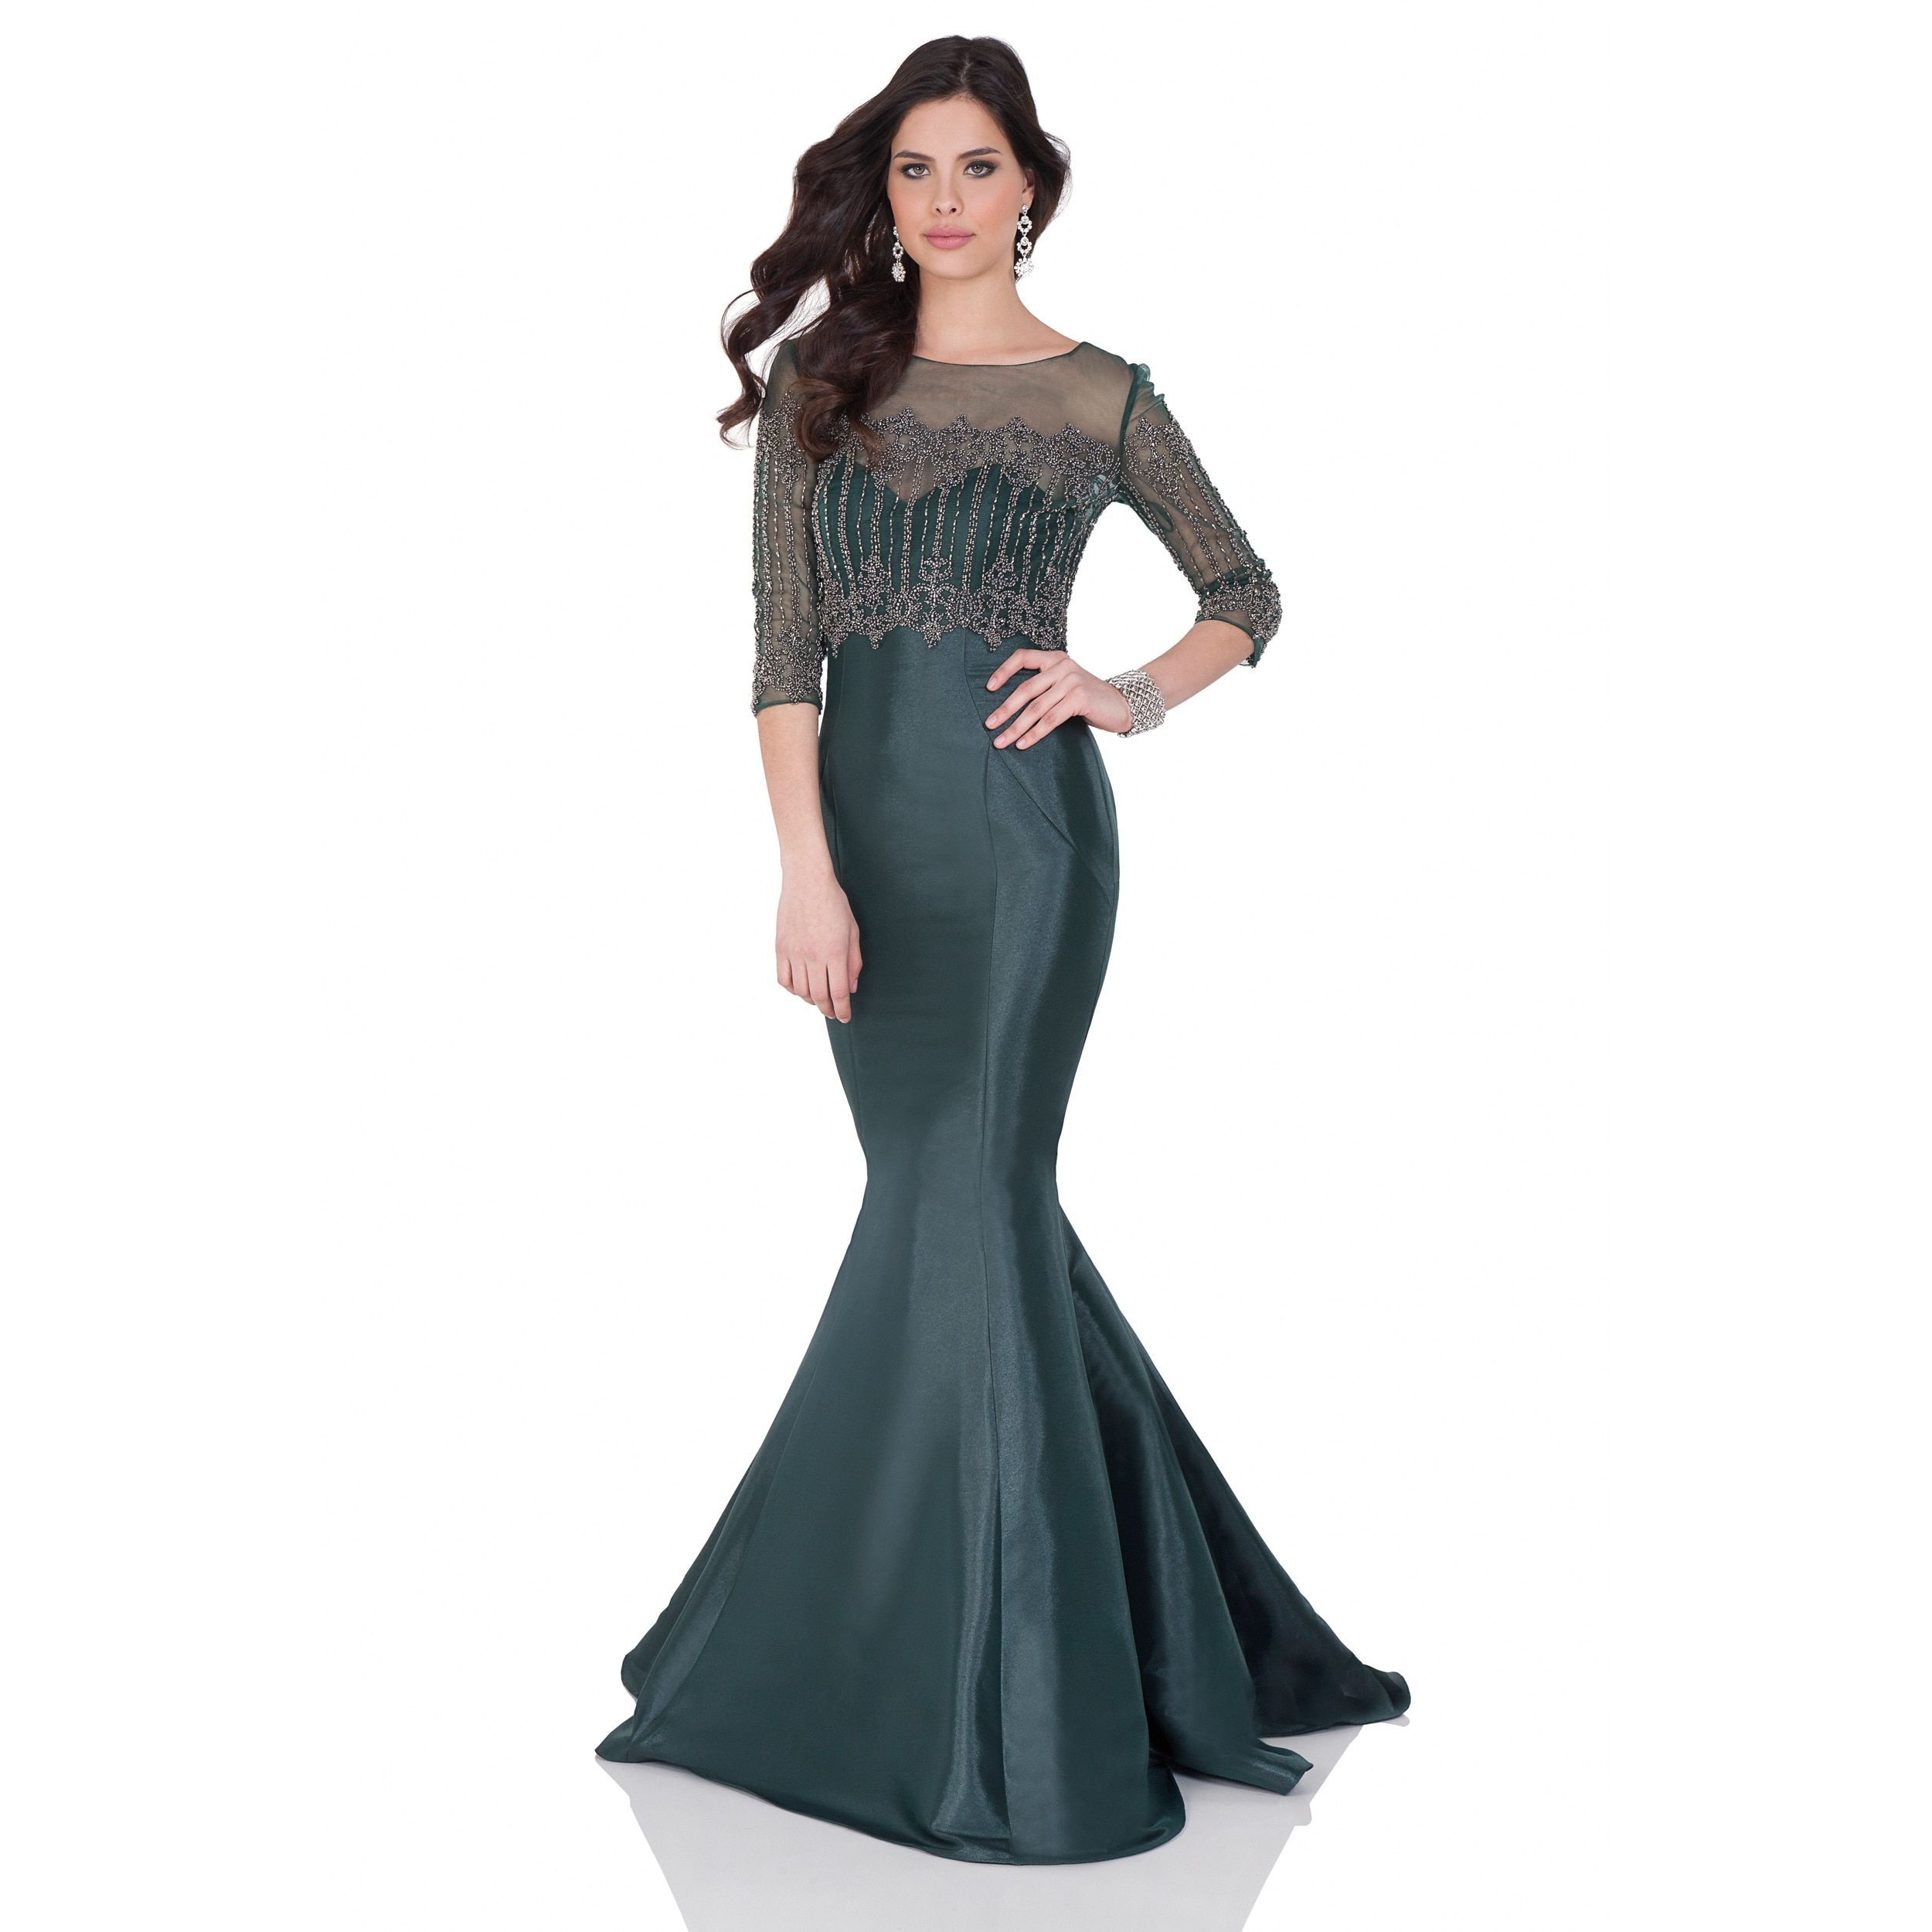 Terani couture womenus shimmer and sheer beaded coverup mermaid gown